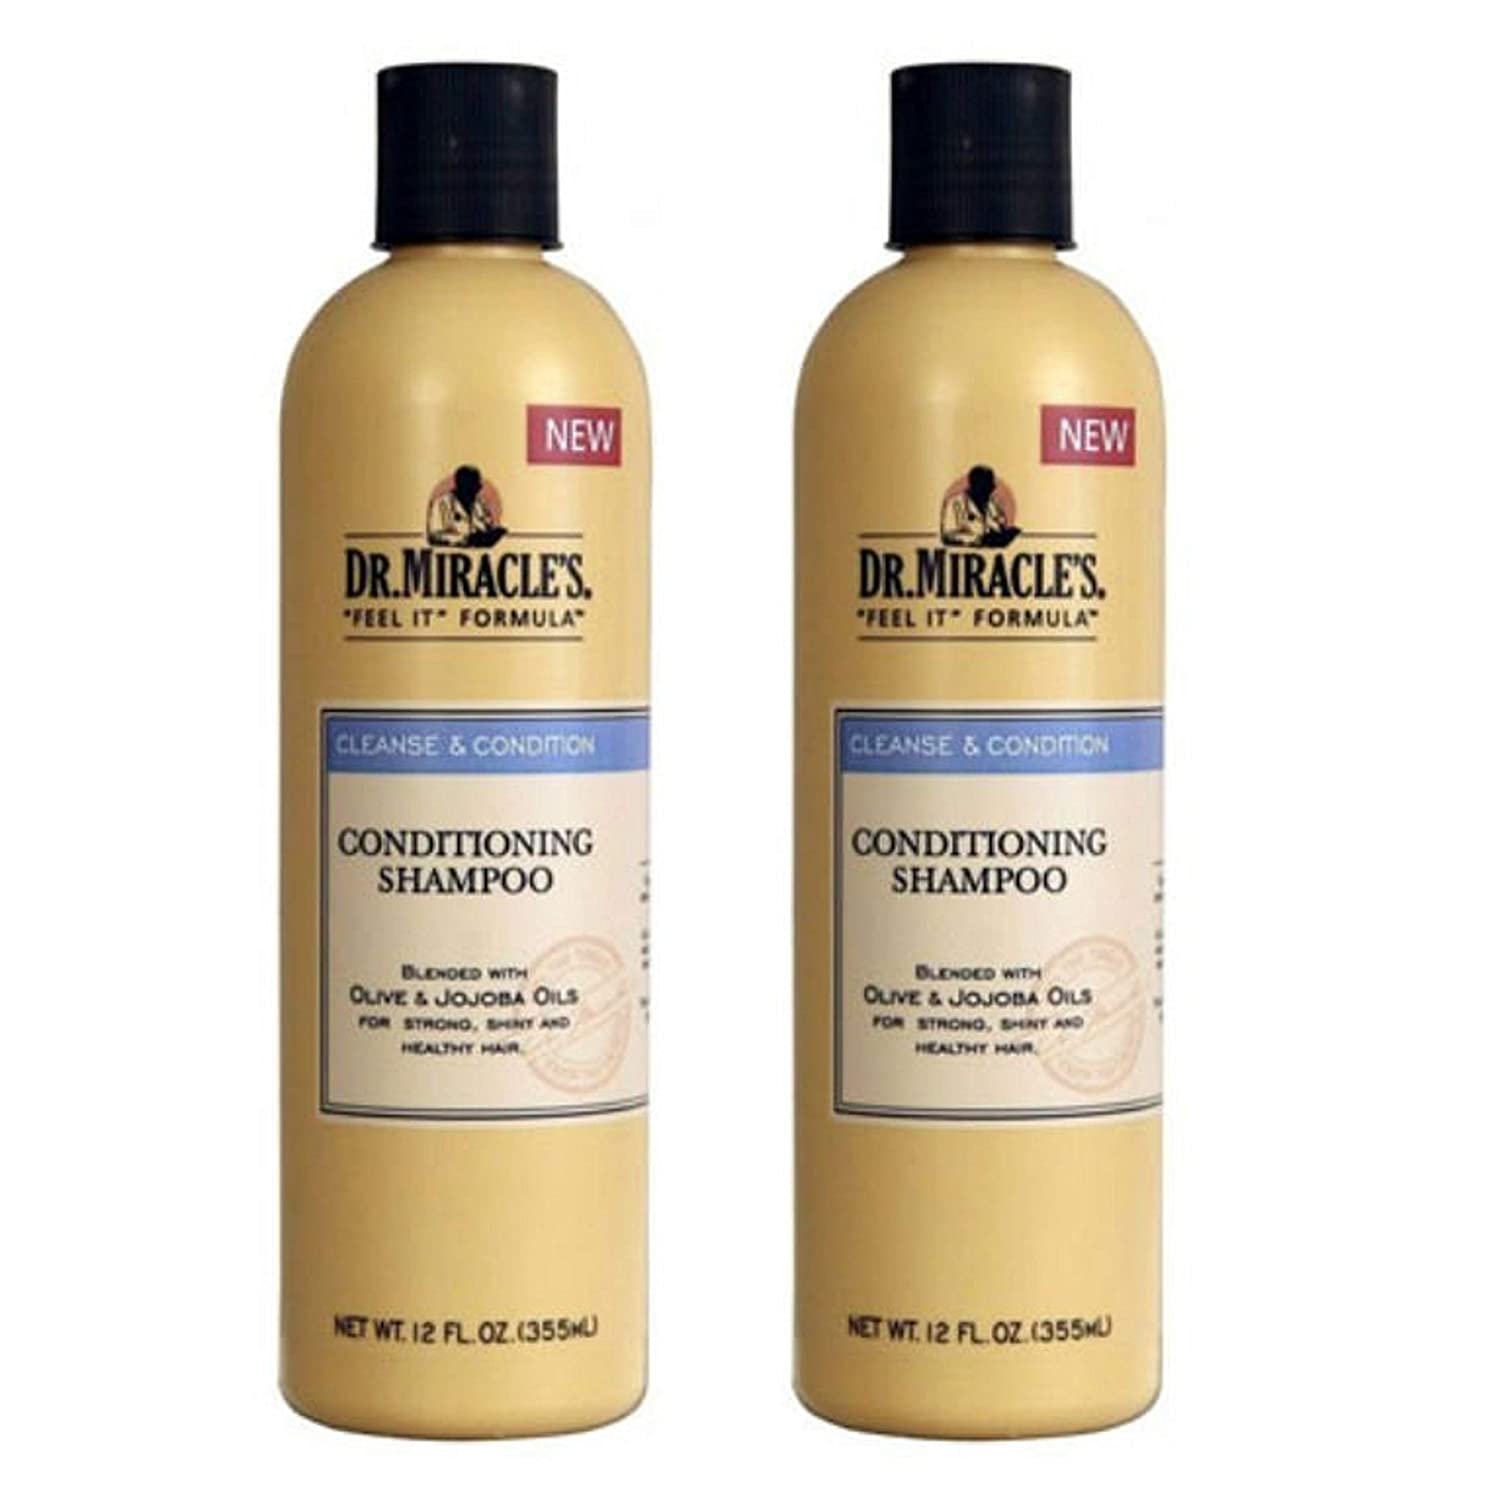 Dr. Miracles Cleanse & Condition Shampoo 12oz (2 Pack)